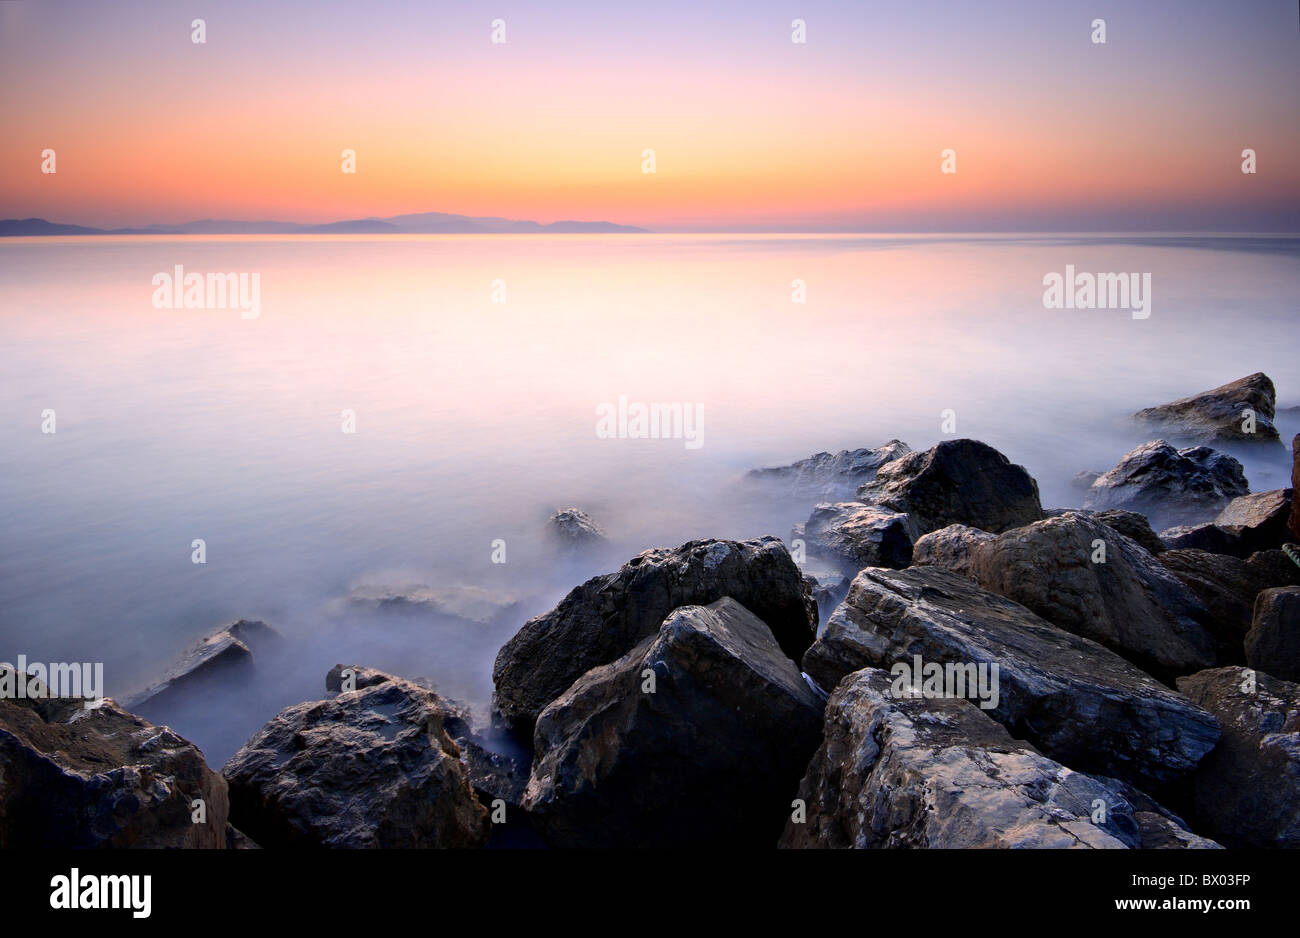 Scenery from the Aegean coast just after the sunset. - Stock Image